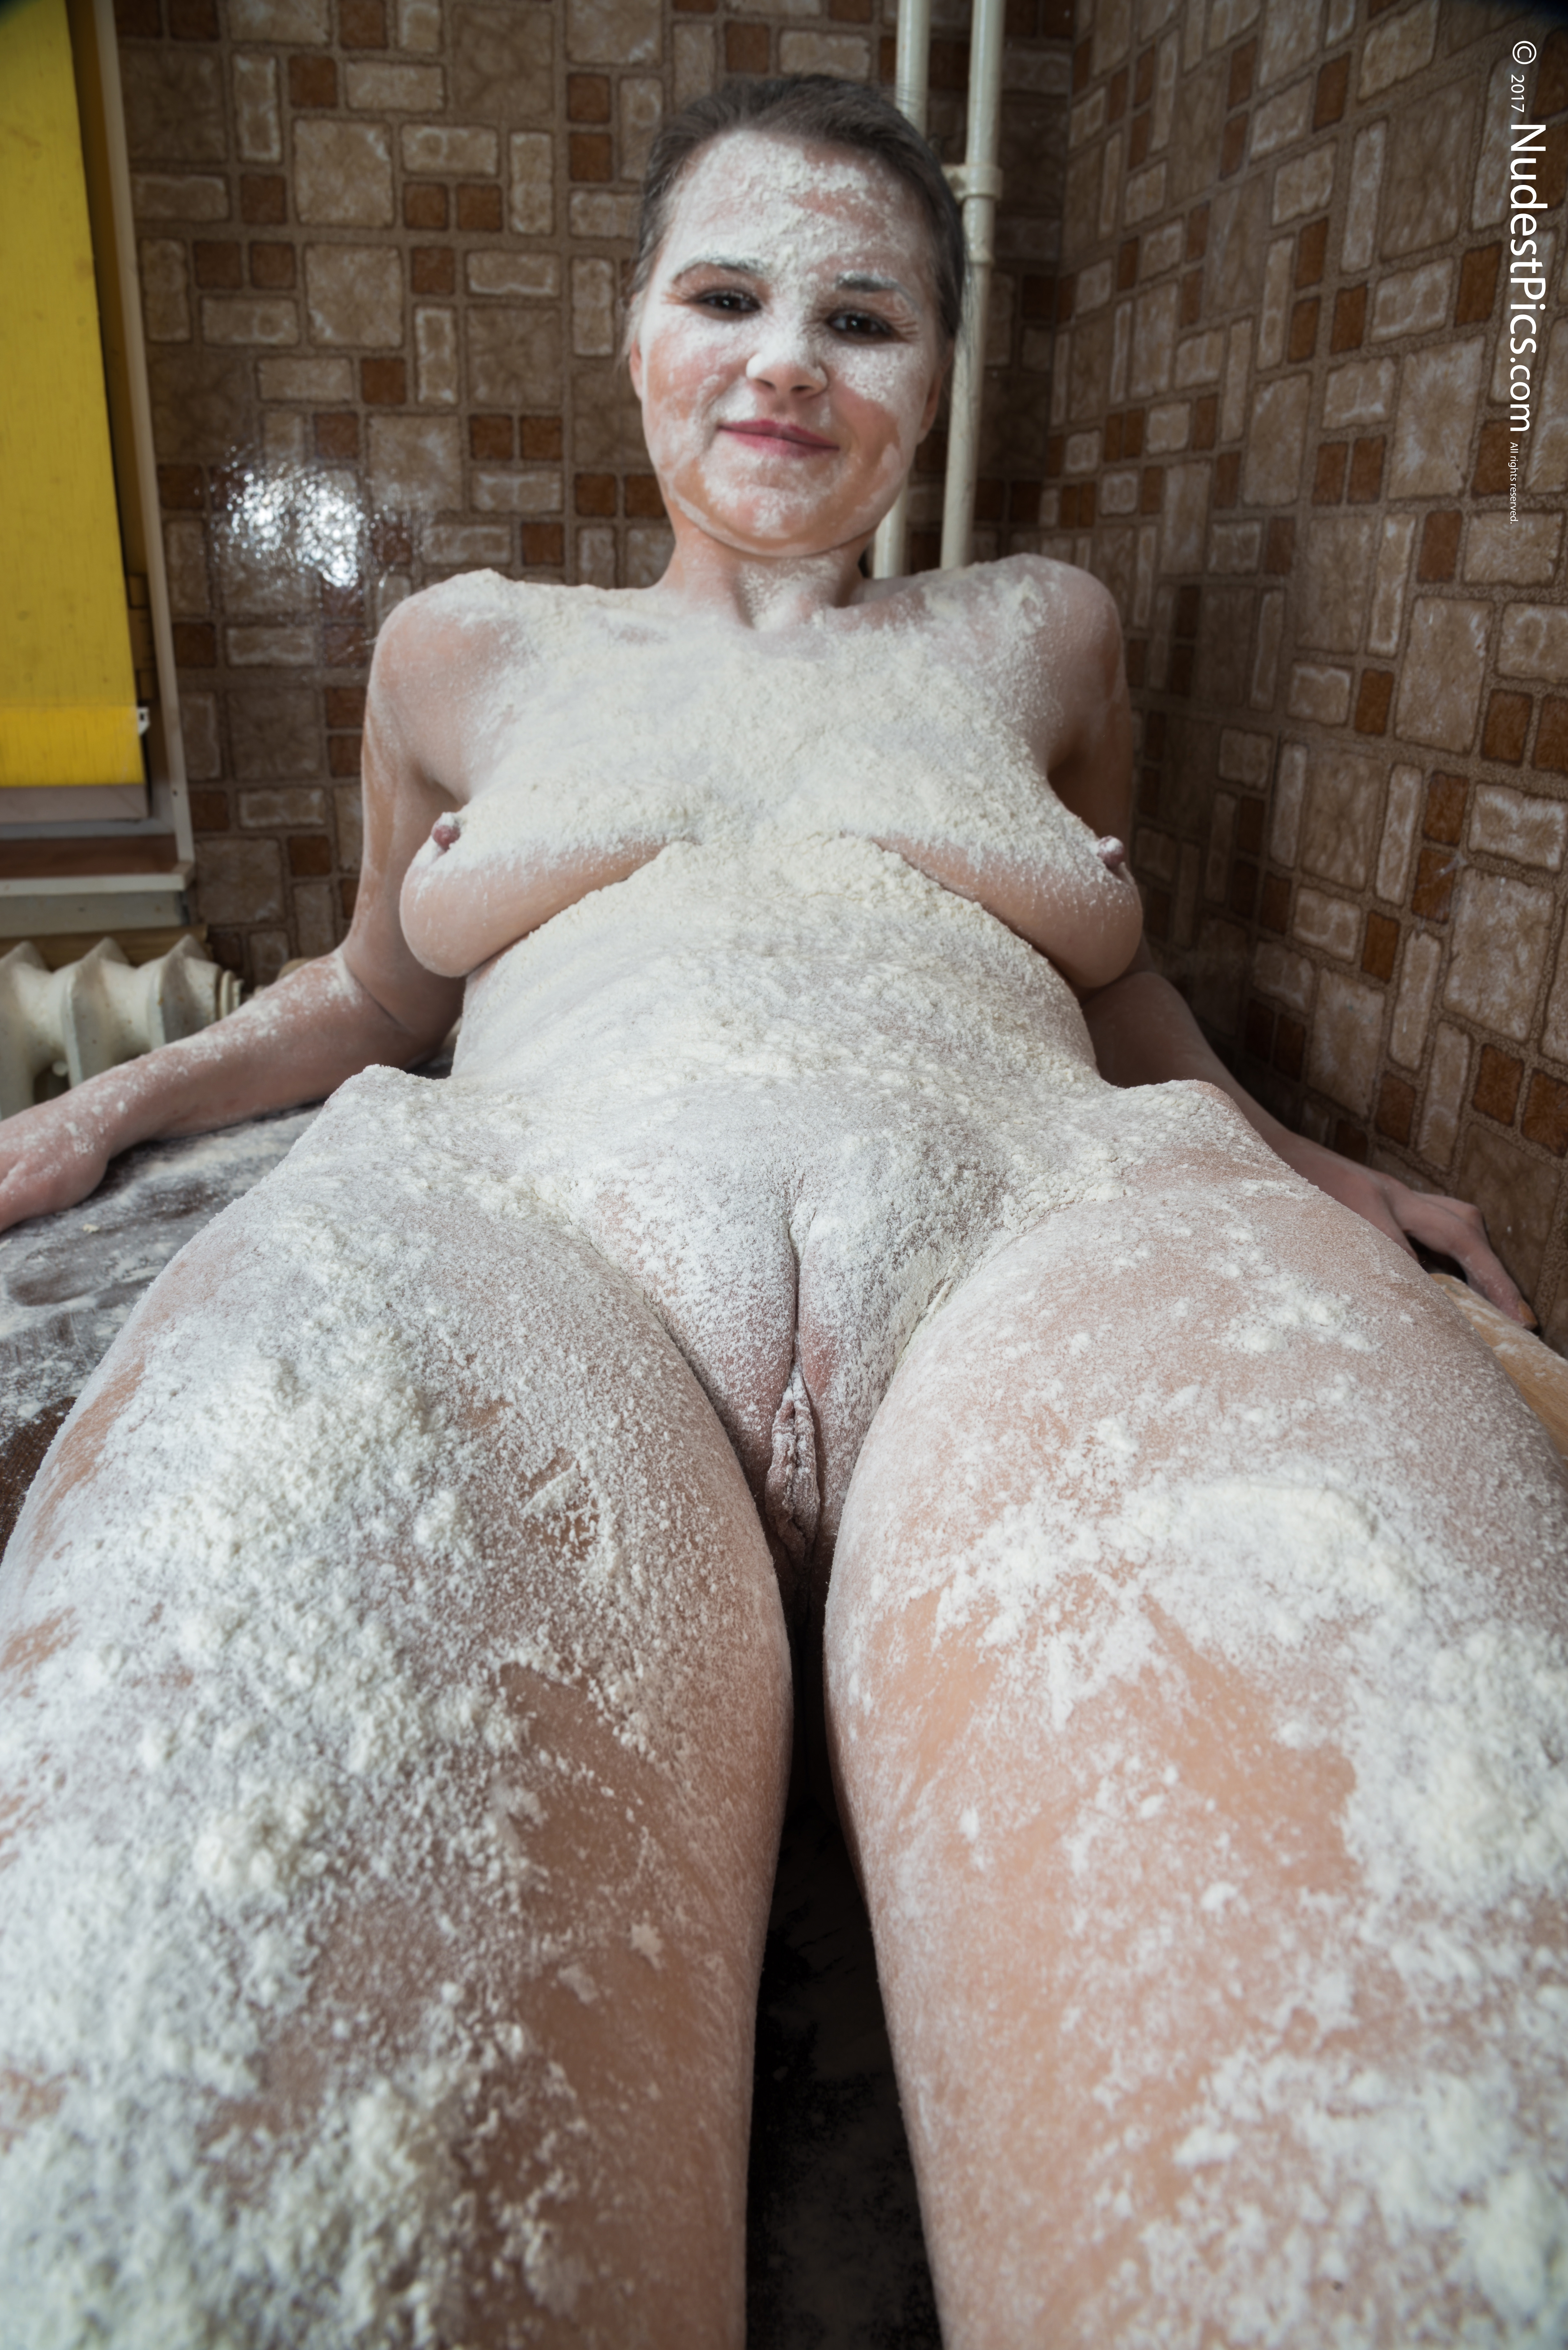 Naked Girl Fully Covered with Flour HD